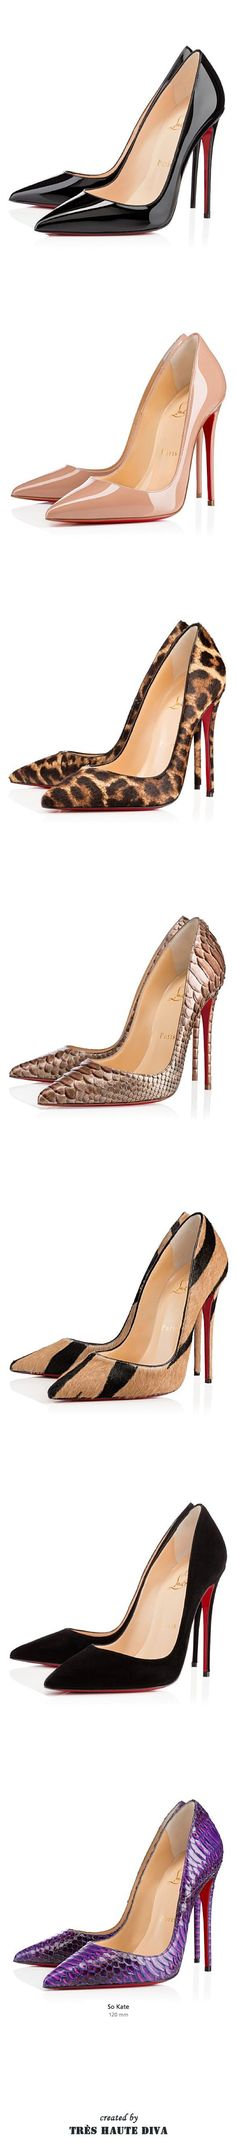 Christian Louboutin 'So Kate' Fall 2014 #leopard #louboutin #lovely #Louboutin